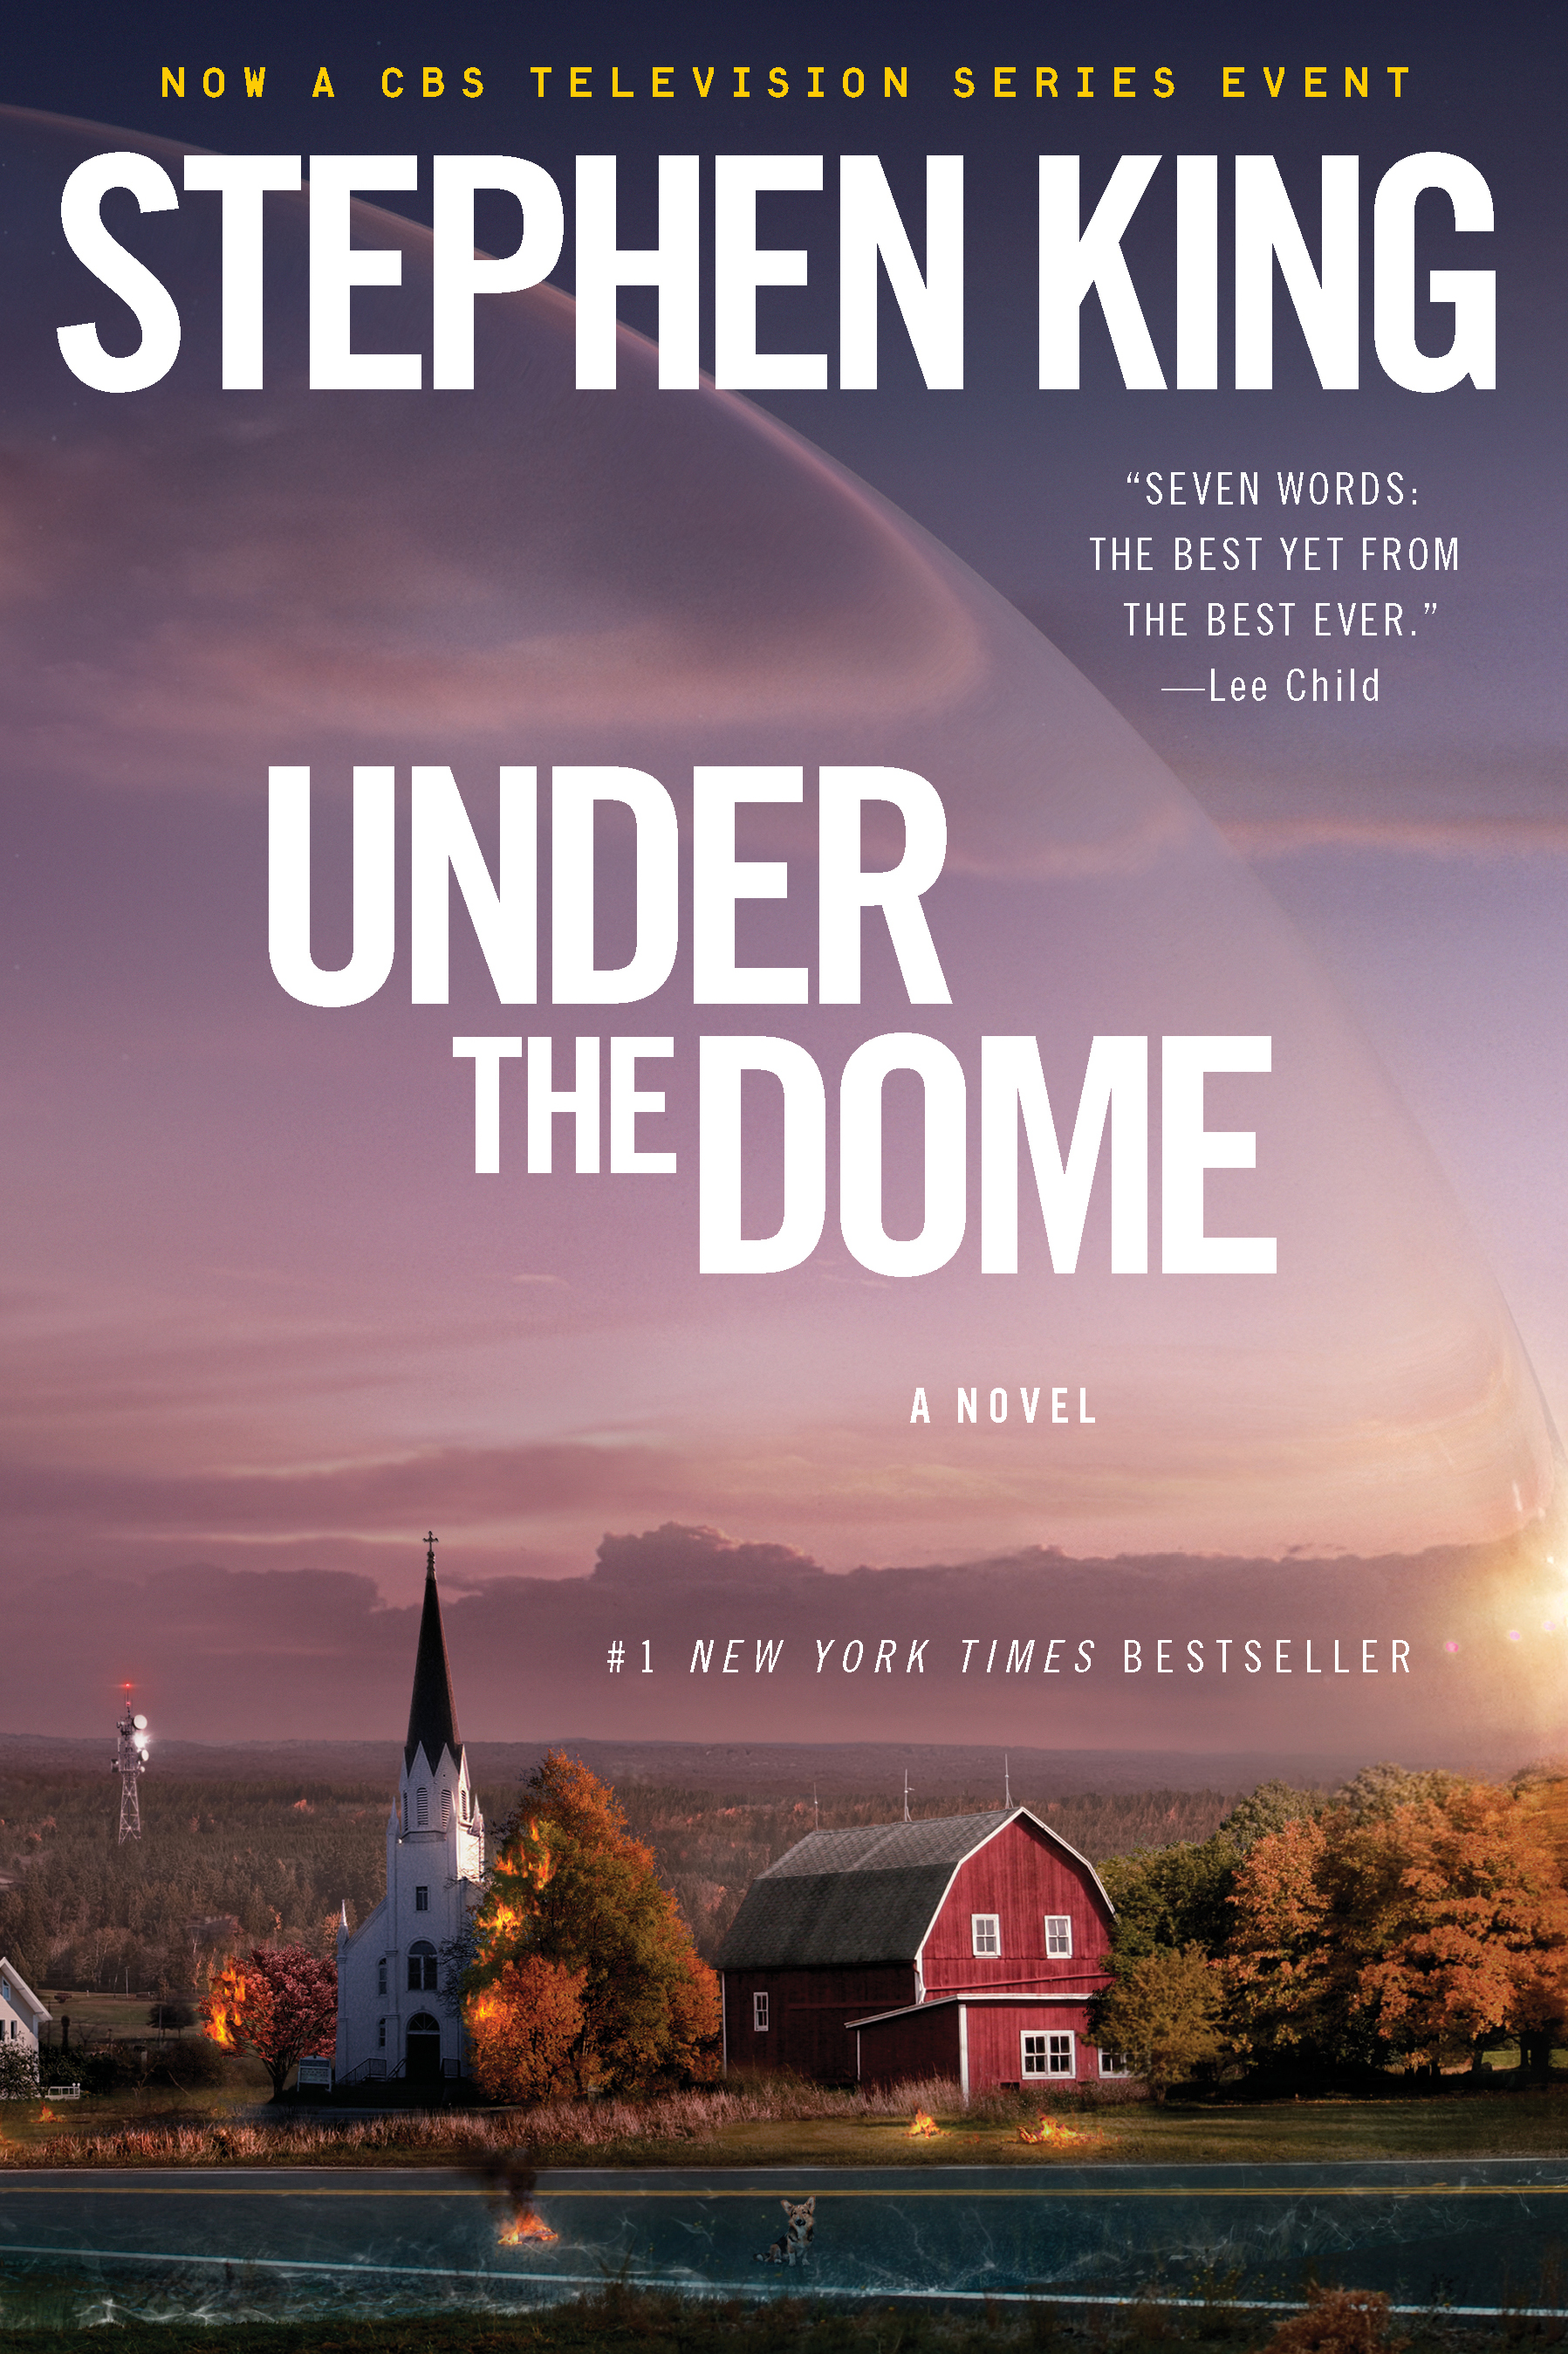 Under the dome 9781476735474 hr